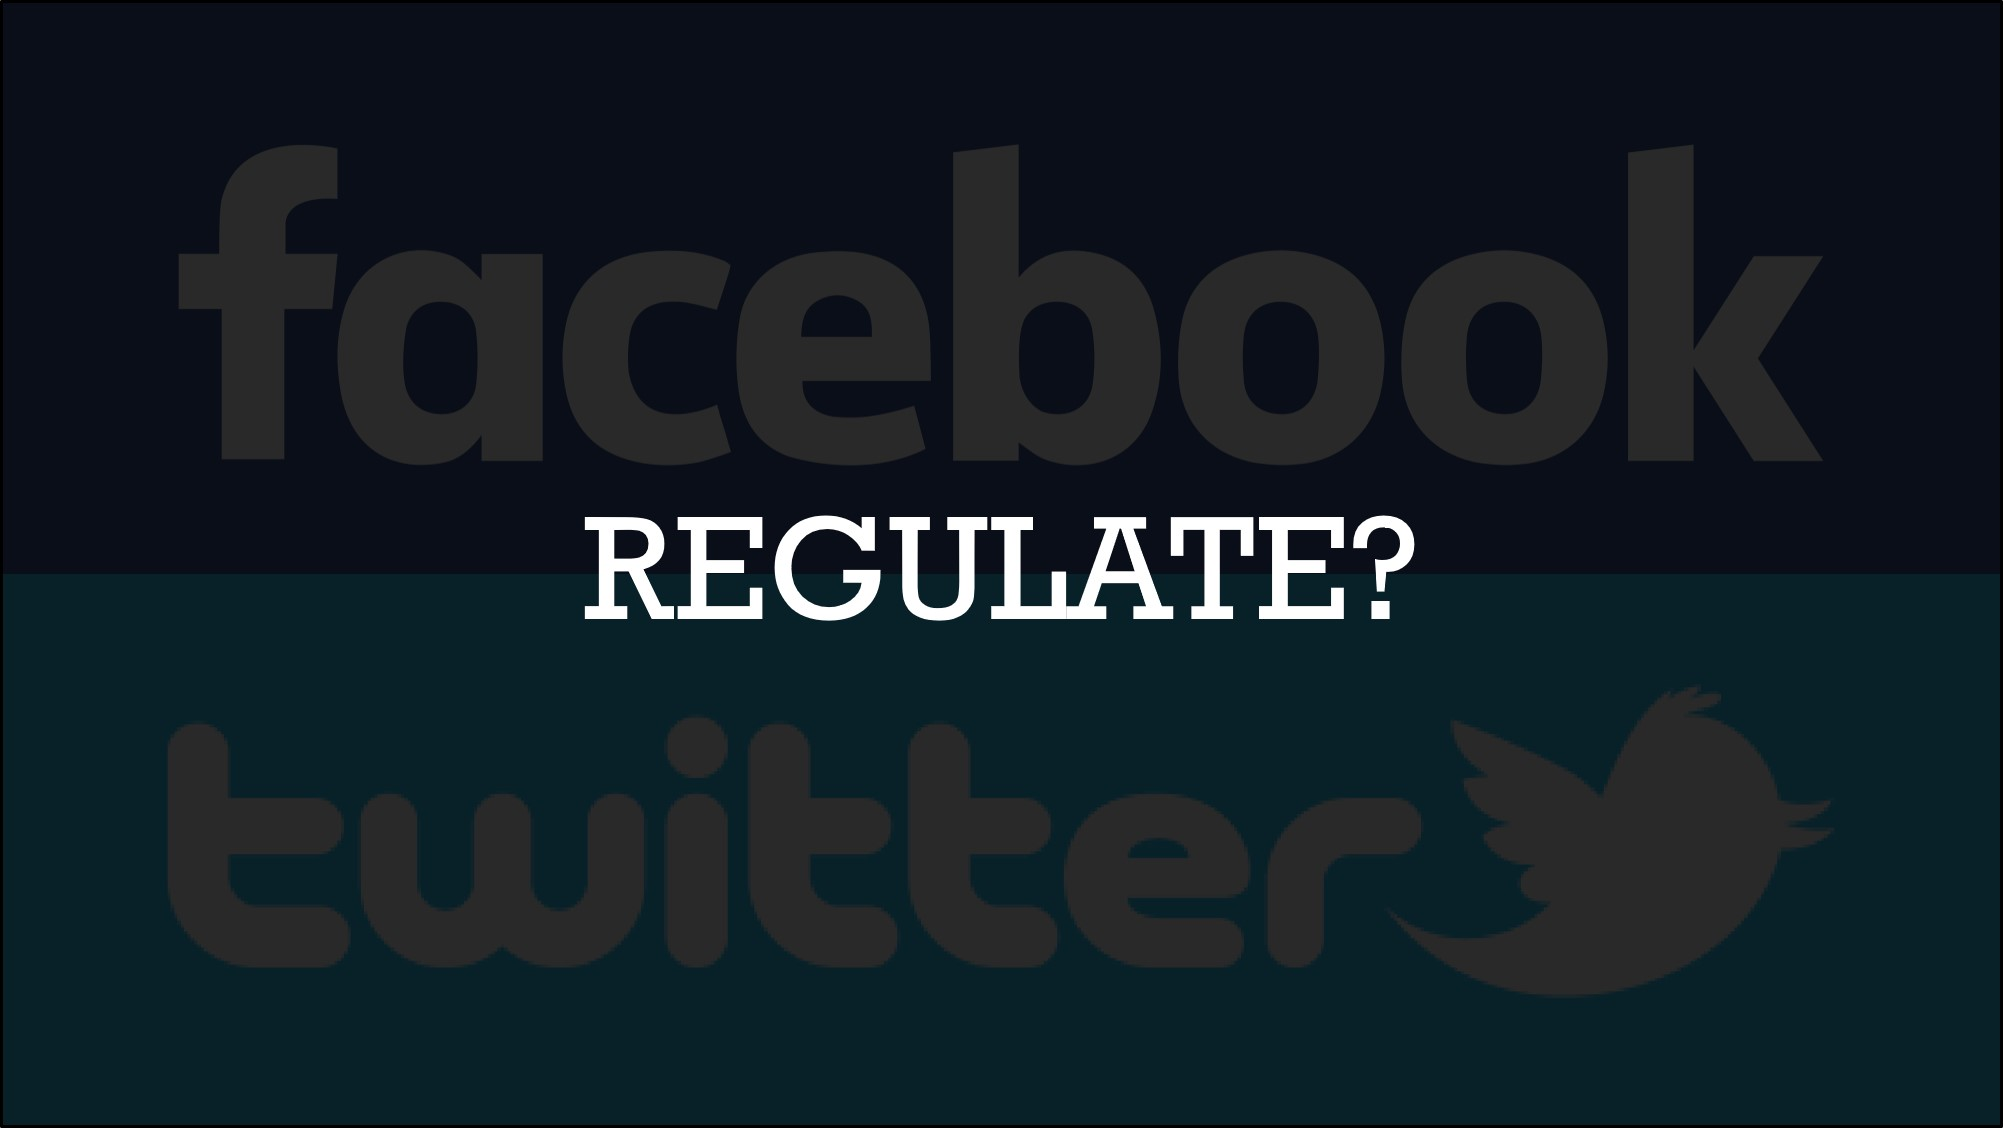 Do we want to regulate Facebook?